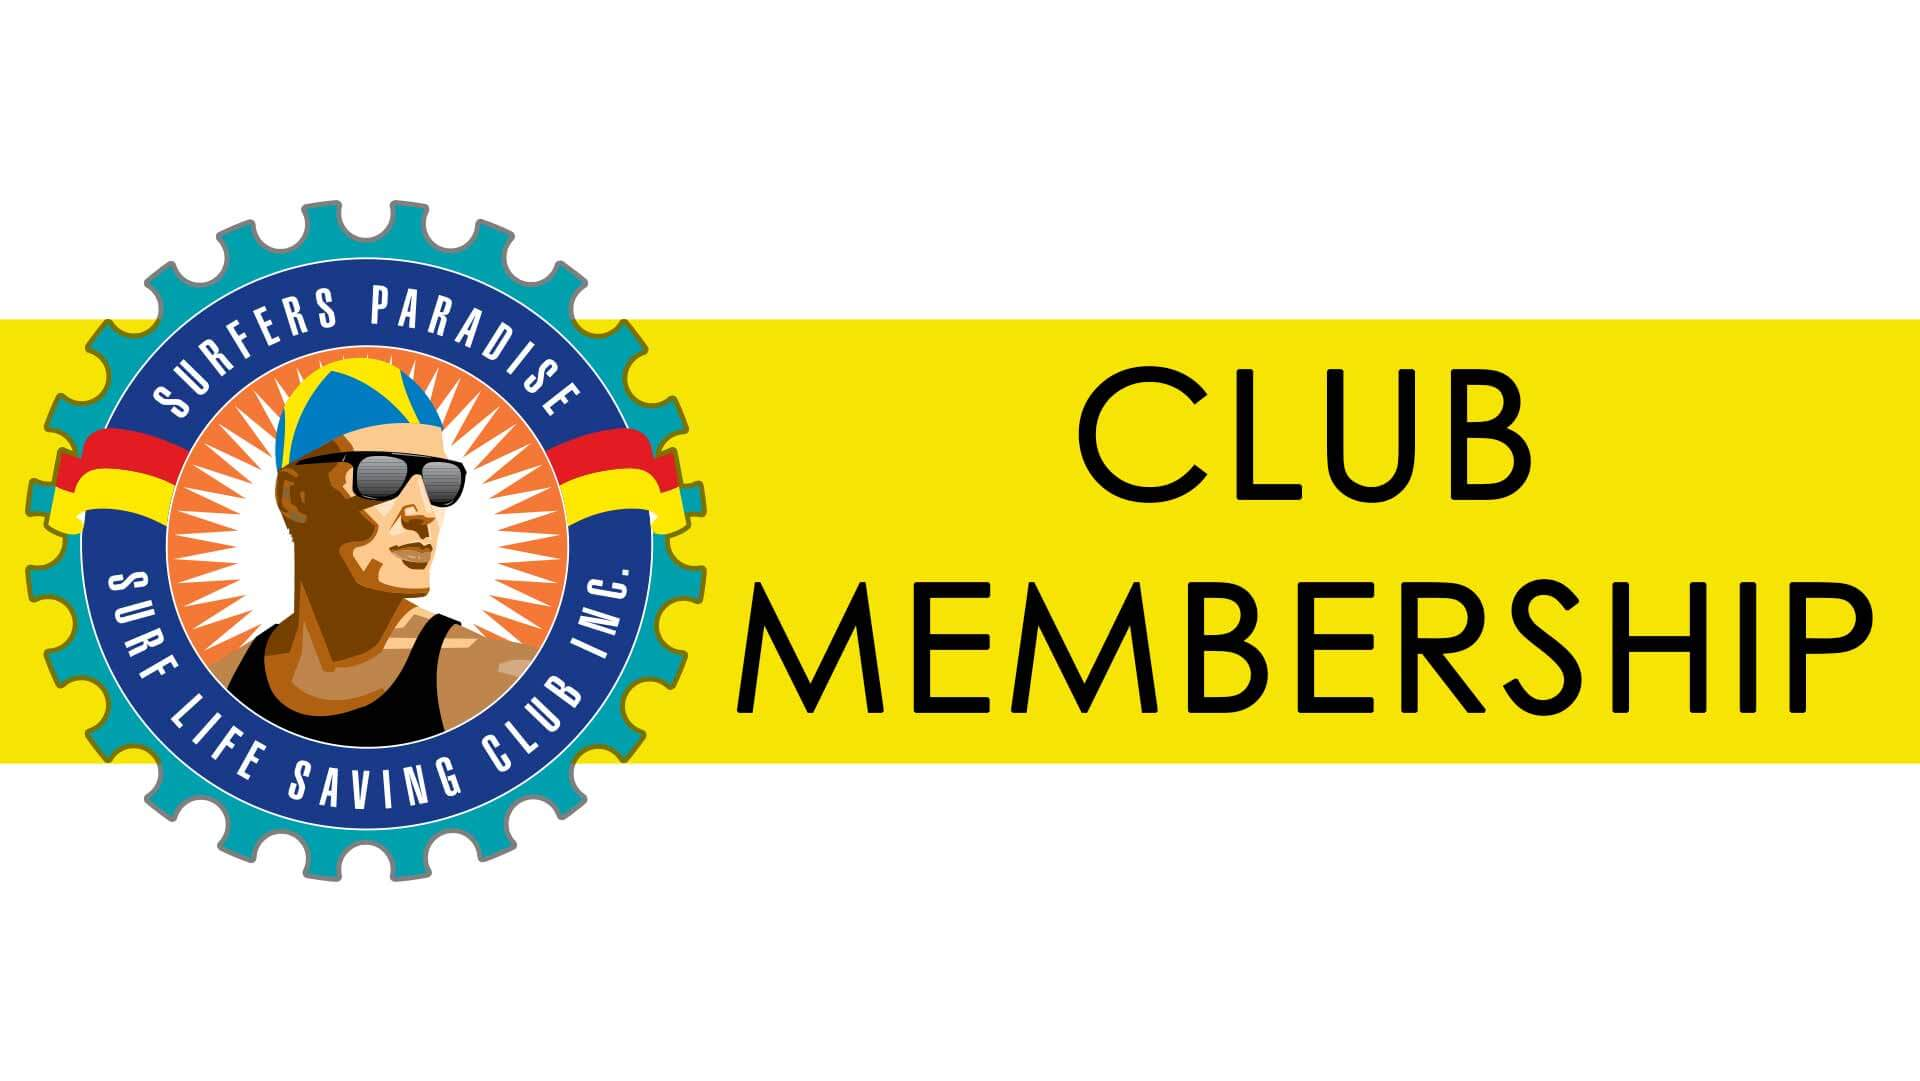 Surfers Paradise SLSC Club Membership